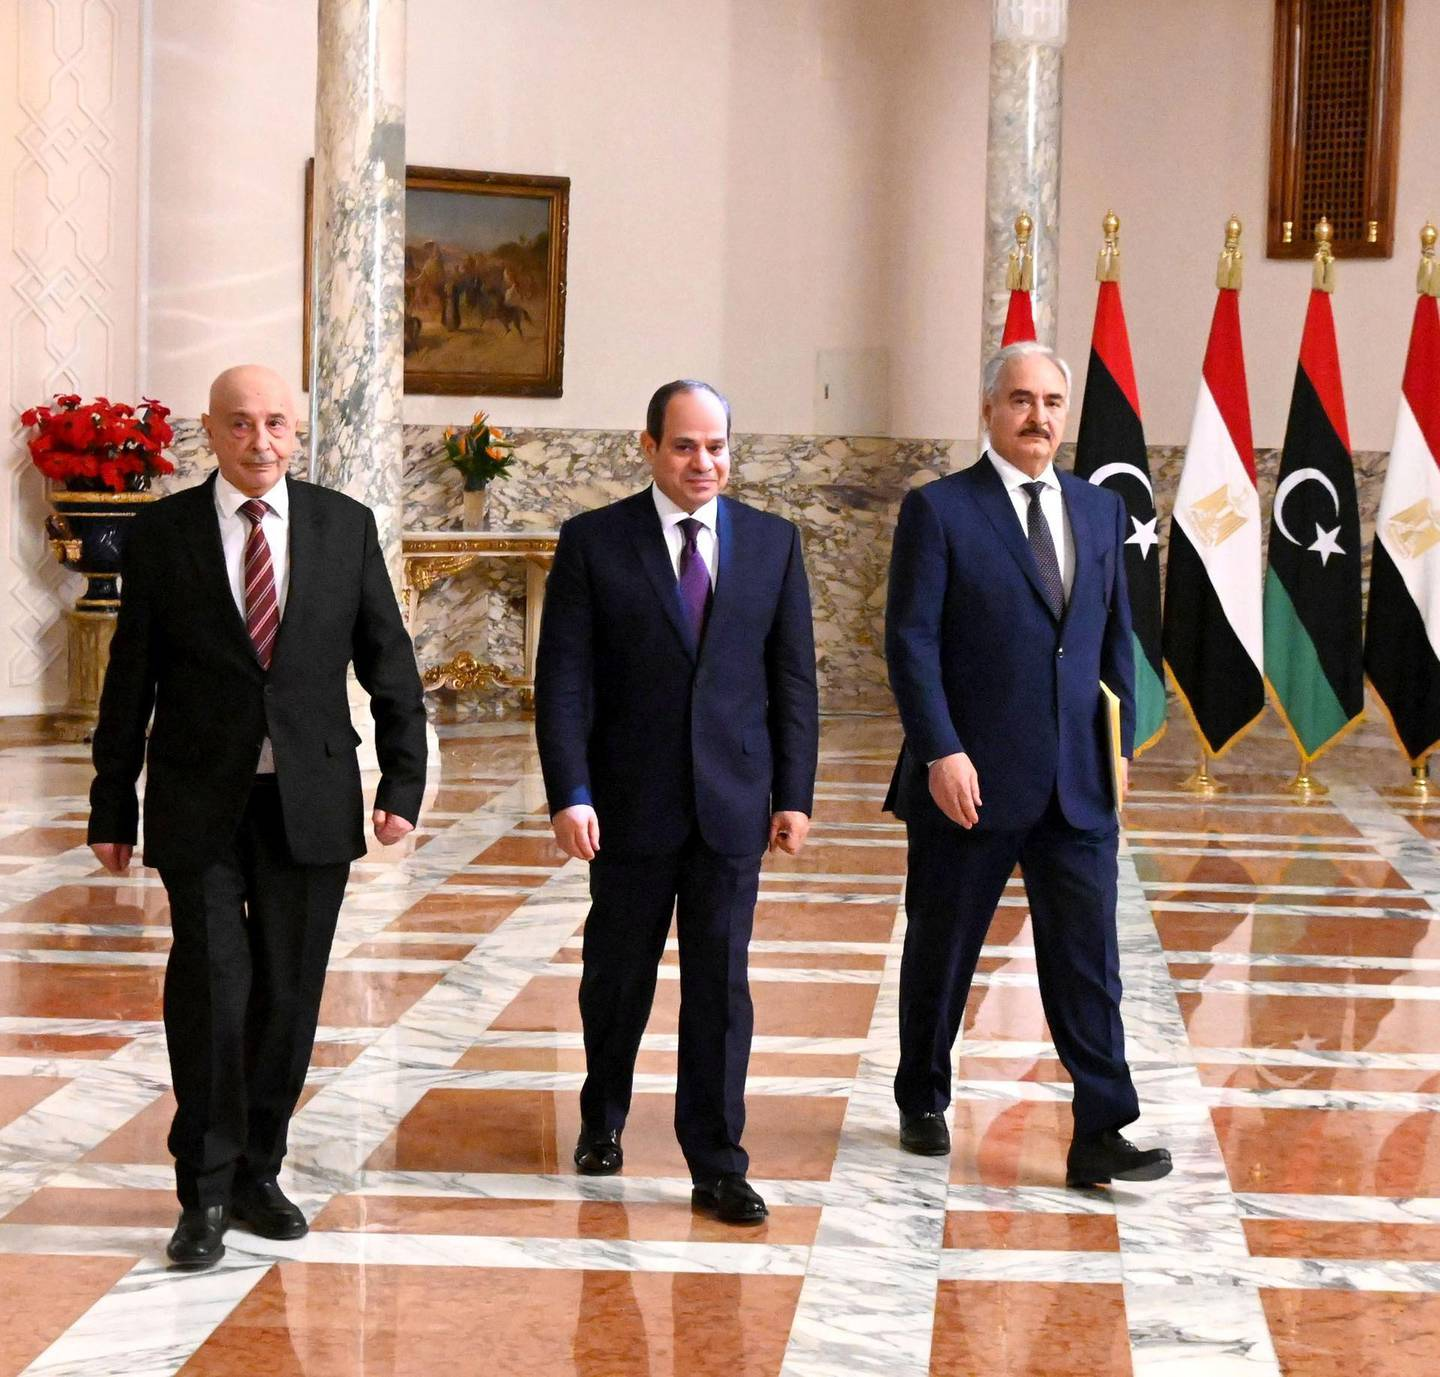 """A handout picture released by the Egyptian Presidency on June 6, 2020 shows Egyptian President Abdel Fattah al-Sisi (C), Libyan commander Khalifa Haftar (R) and the Libyan Parliament speaker Aguila Saleh arriving for a joint press conference in the capital Cairo.  Haftar has backed a ceasefire in Libya starting Monday, Egypt's president announced after talks in Cairo, following a series of military victories by the country's UN-recognised government. - === RESTRICTED TO EDITORIAL USE - MANDATORY CREDIT """"AFP PHOTO / HO / EGYPTIAN PRESIDENCY' - NO MARKETING NO ADVERTISING CAMPAIGNS - DISTRIBUTED AS A SERVICE TO CLIENTS ==  / AFP / EGYPTIAN PRESIDENCY / - / === RESTRICTED TO EDITORIAL USE - MANDATORY CREDIT """"AFP PHOTO / HO / EGYPTIAN PRESIDENCY' - NO MARKETING NO ADVERTISING CAMPAIGNS - DISTRIBUTED AS A SERVICE TO CLIENTS =="""